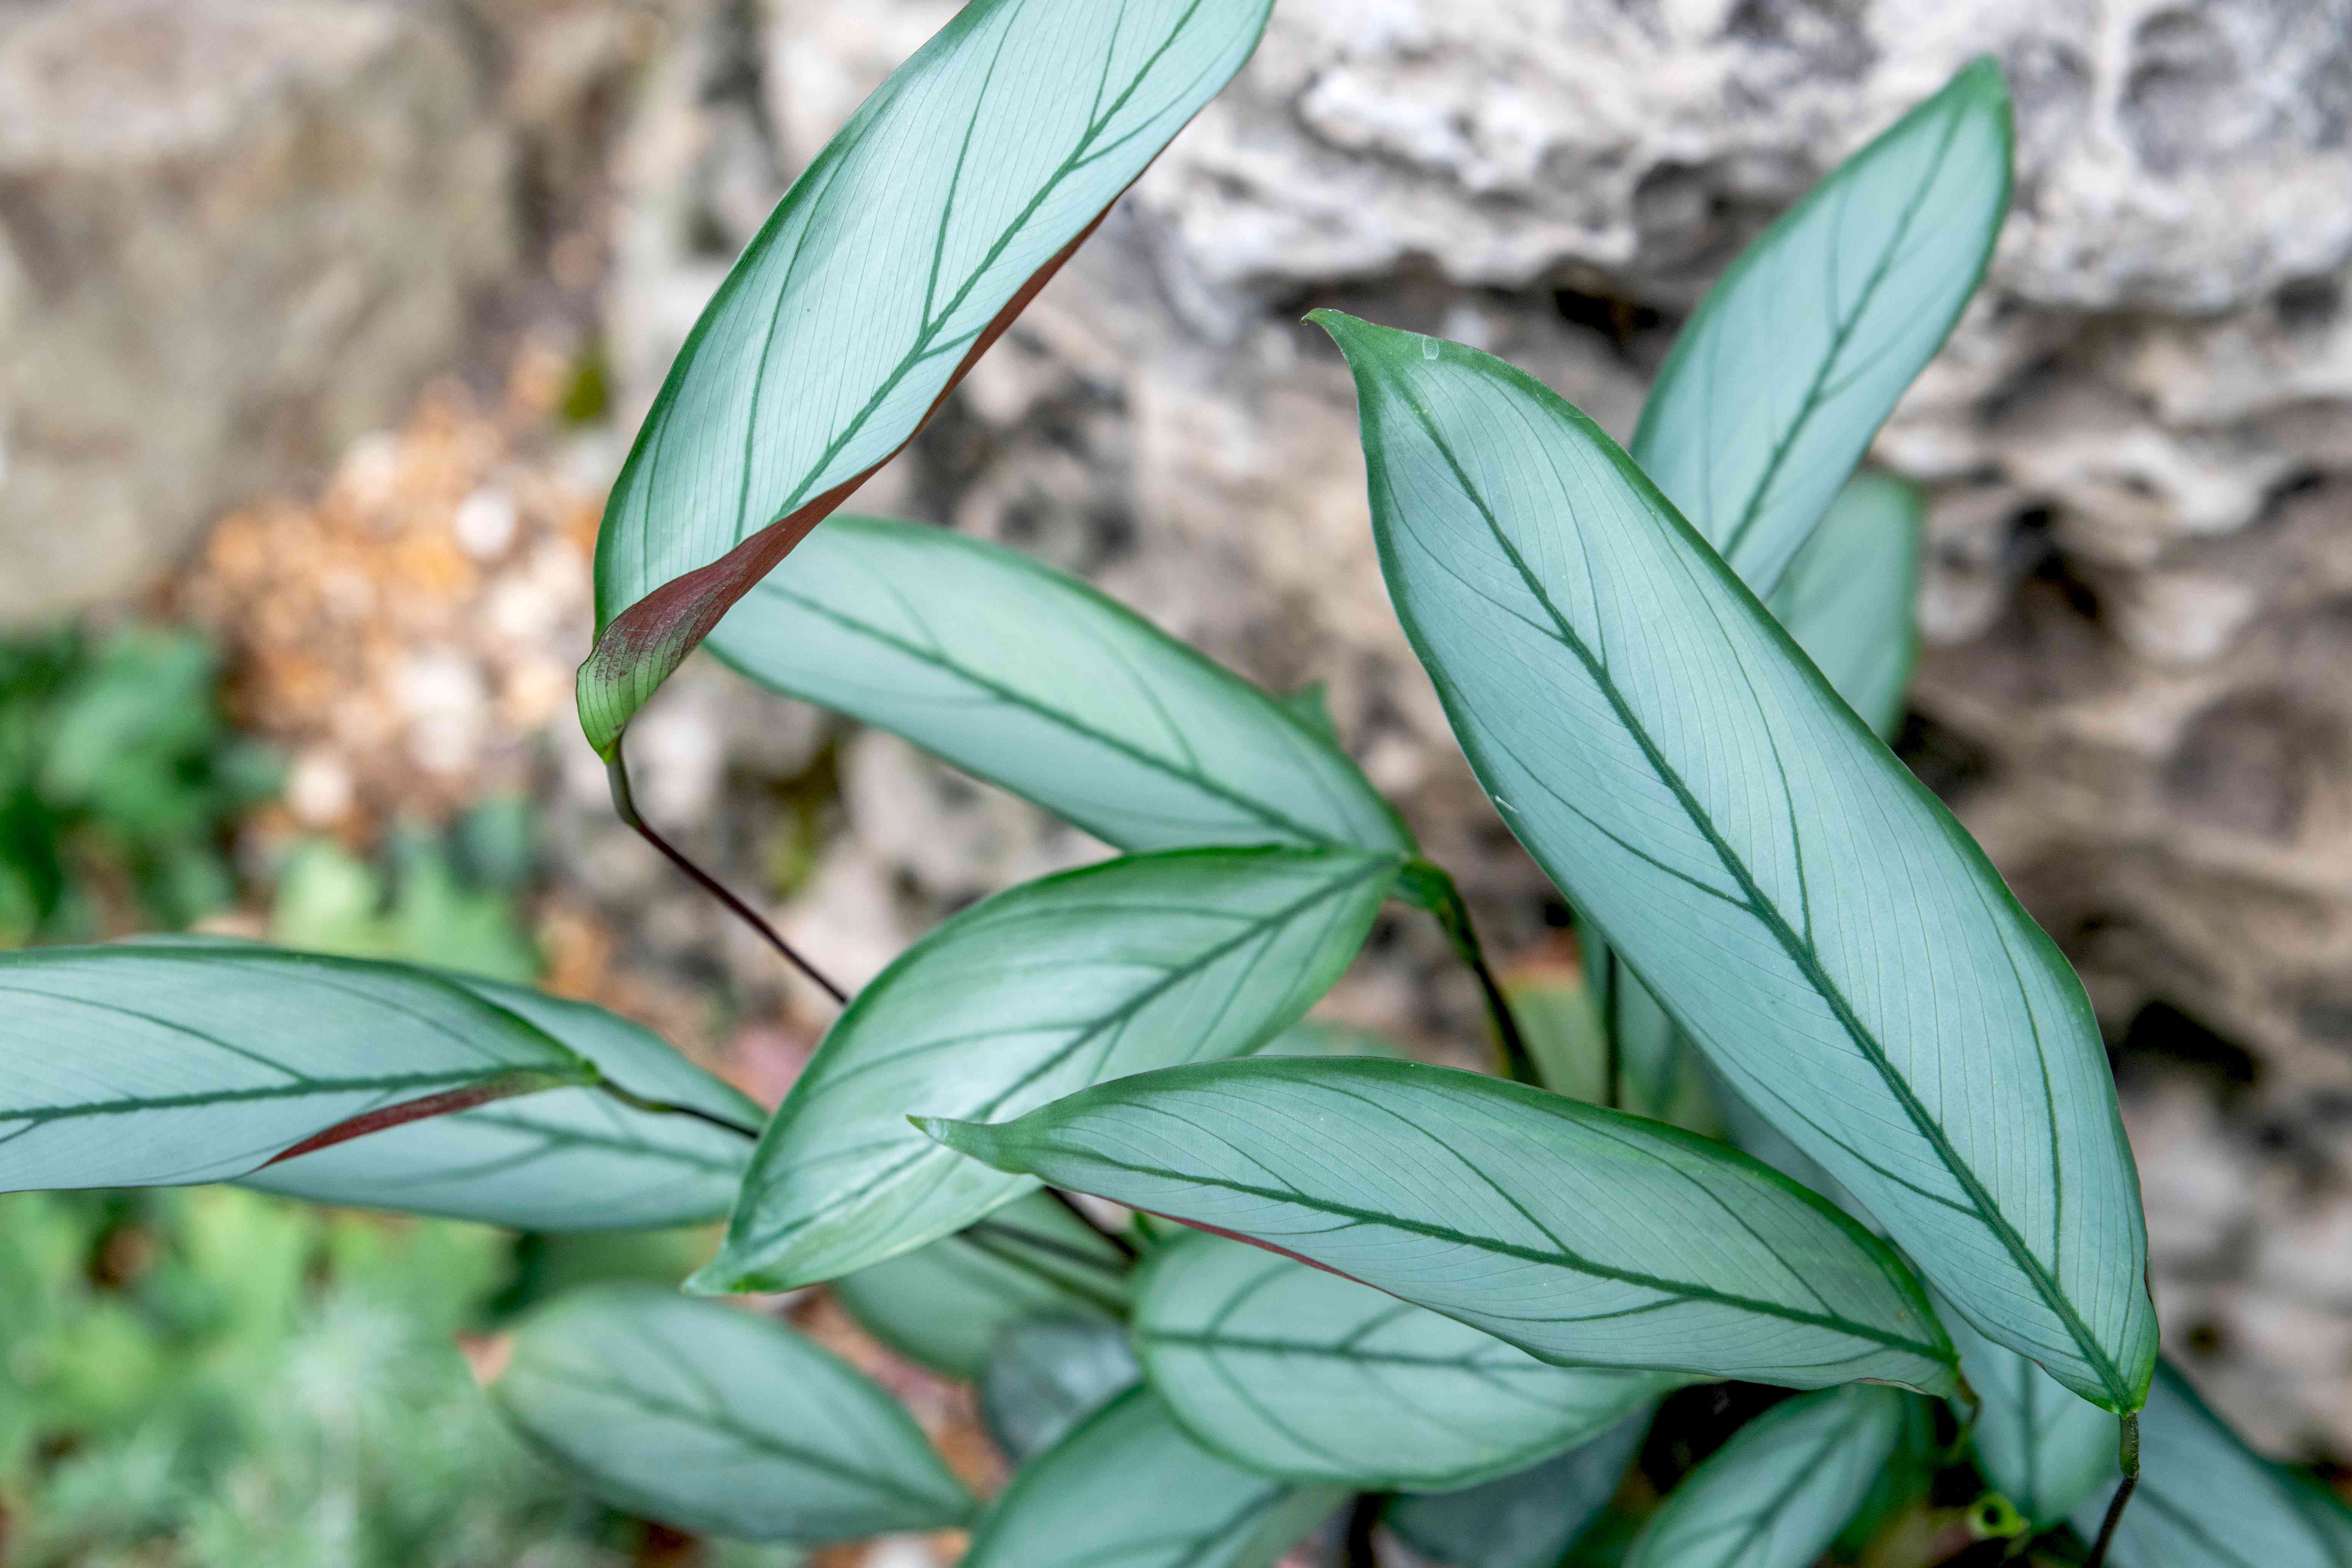 Ctenanthe setosa grey star plant with silvery-green oblong leaves closeup